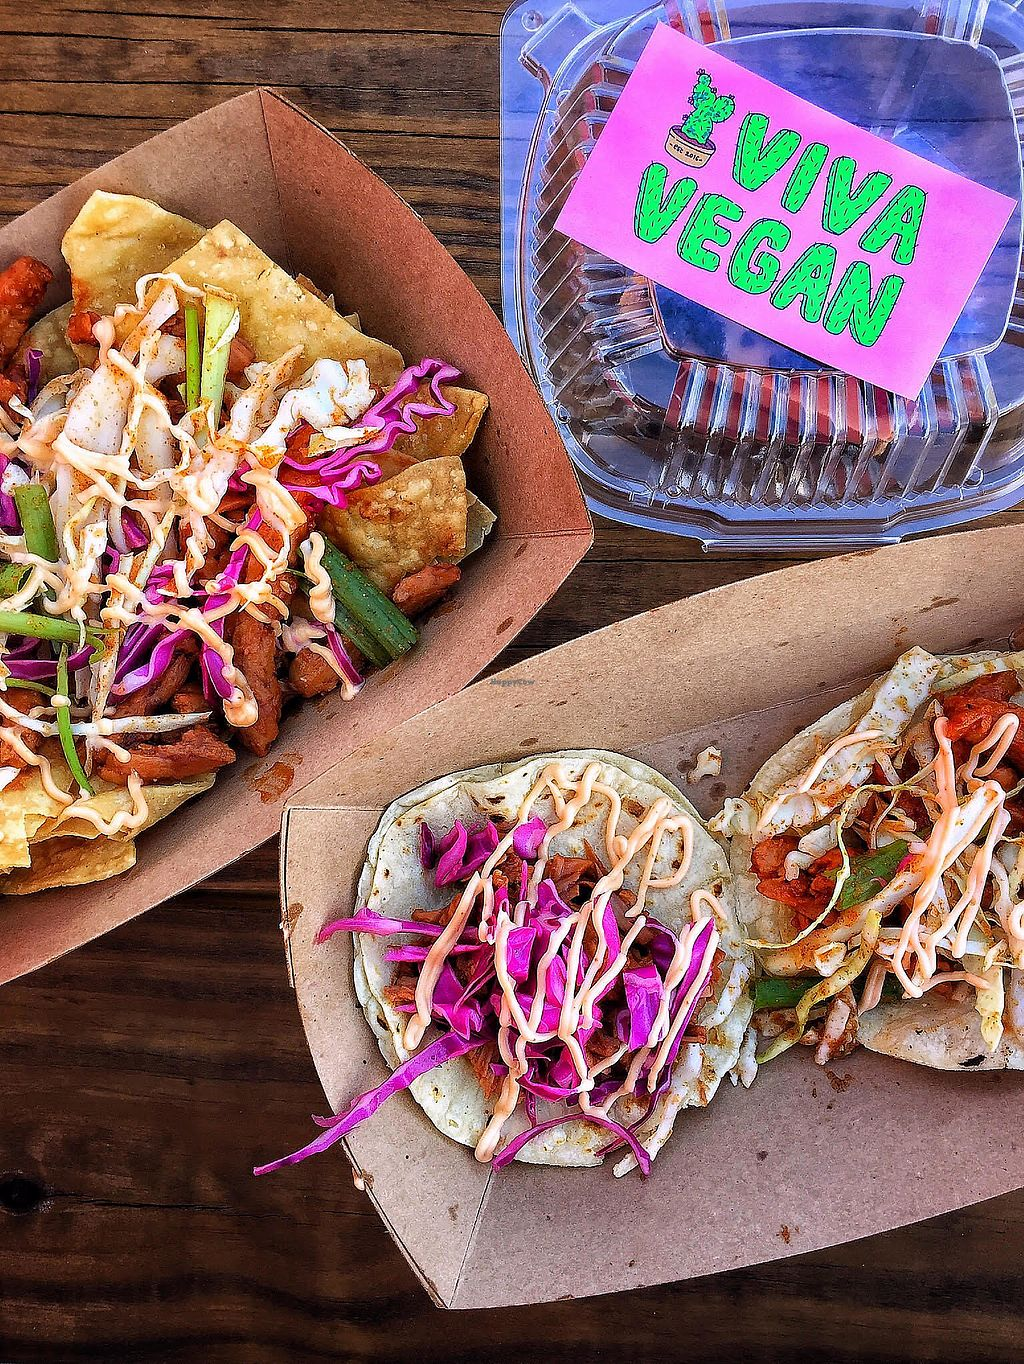 """Photo of Viva Vegan  by <a href=""""/members/profile/vegicana"""">vegicana</a> <br/>photo by @travel.seek.eat.repeat on instagram  <br/> September 27, 2017  - <a href='/contact/abuse/image/101850/309209'>Report</a>"""